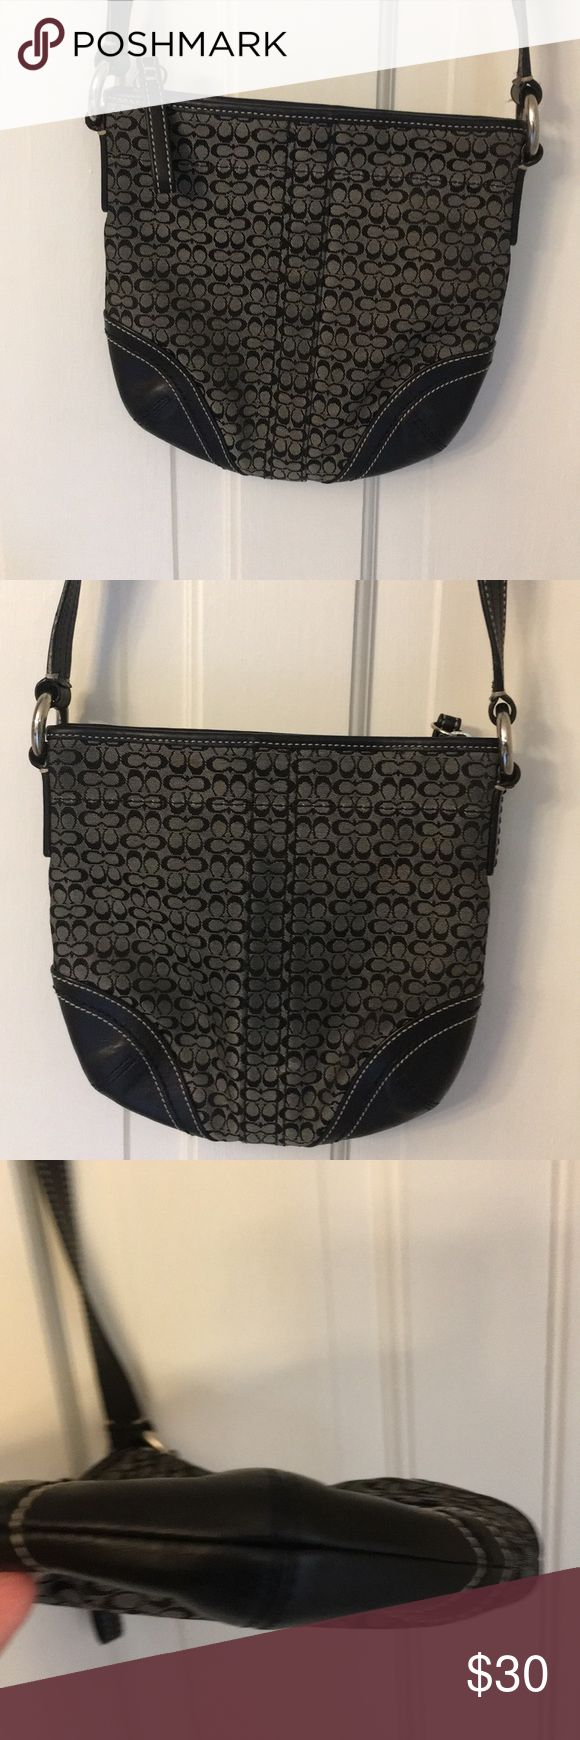 Auth Coach Mini Signature Crossbody Swingpack Black and silver mini Signature Coach Swingpack.  Adjustable leather shoulder strap.  Great condition only wear I see is from darkening from rubbing against clothes. Not really noticeable but thought I'd mention. Other than that clean inside and out. No stains, rips, etc Smoke free home Coach Bags Crossbody Bags